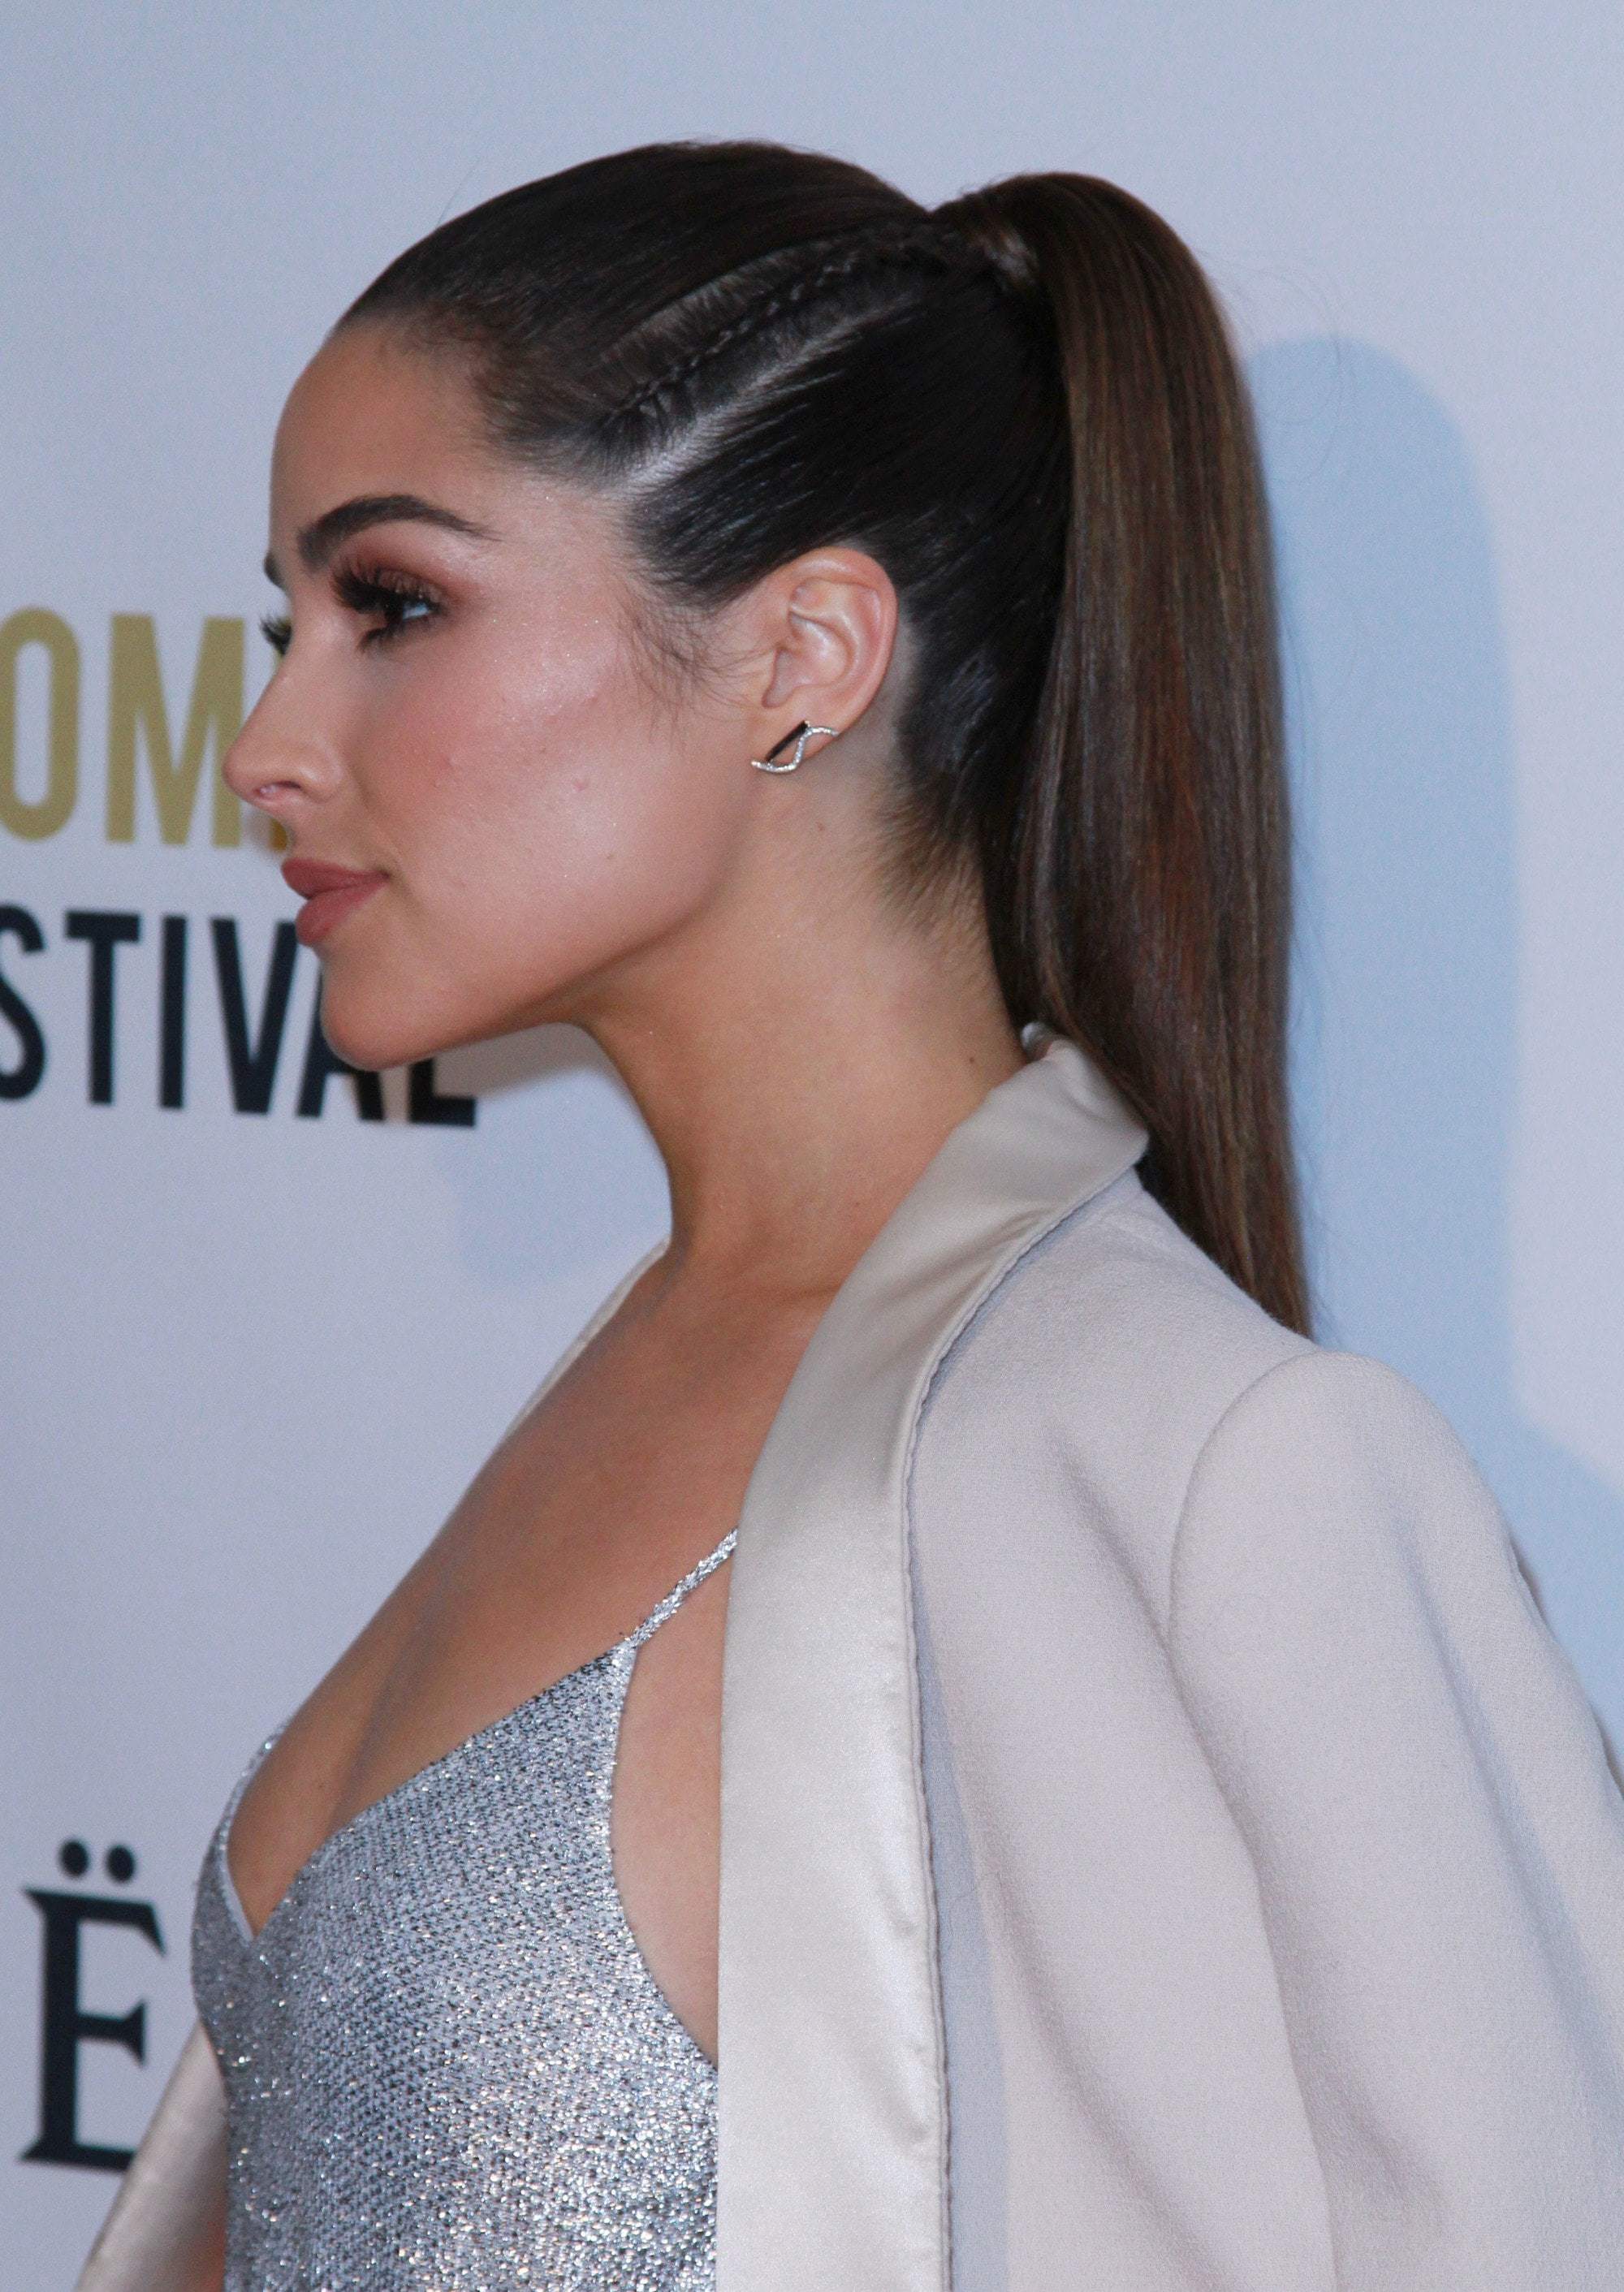 Side braid hairstyles: Olivia Culpo with long straight brown hair tied into a high ponytail with cornrow braids